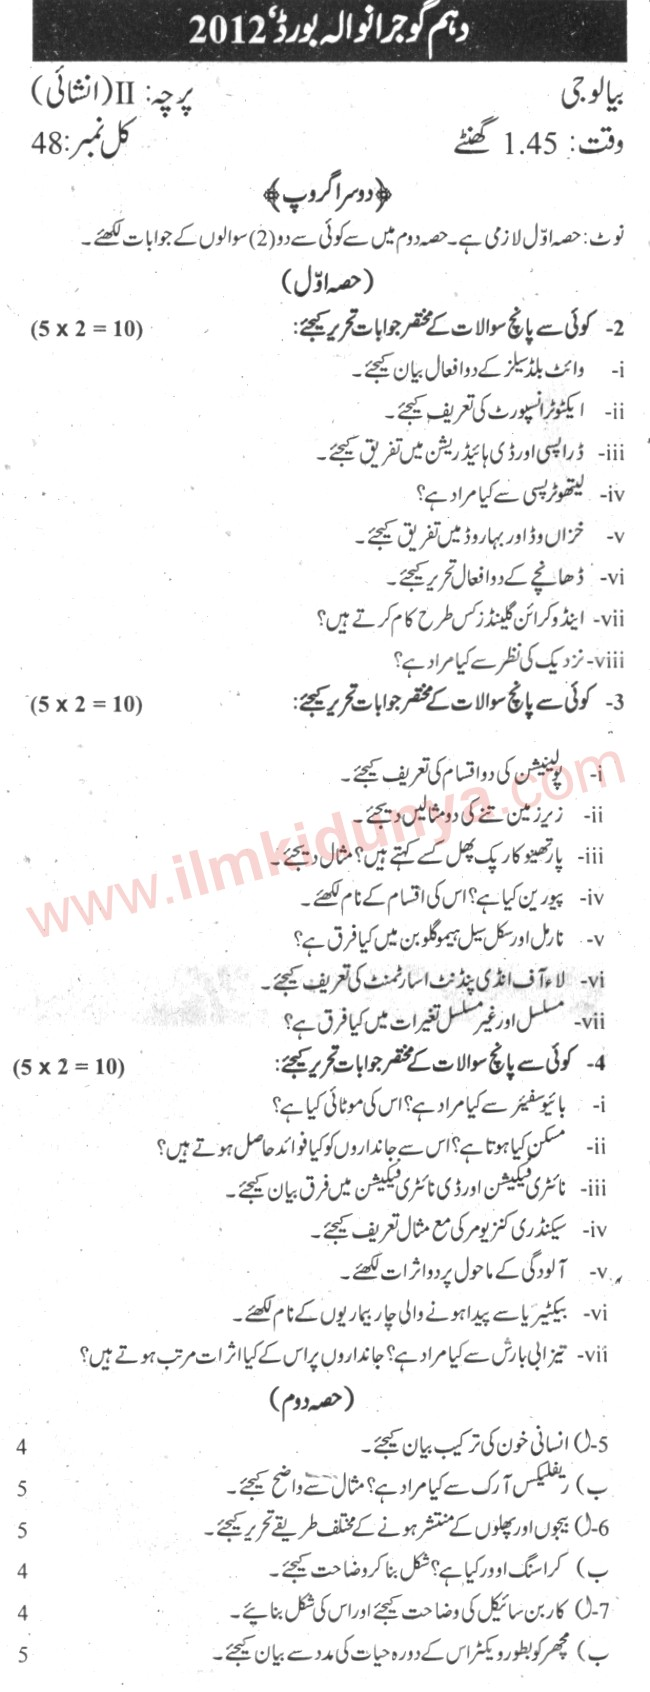 Past Papers 2012 Gujranwala Board 10th Class Biology